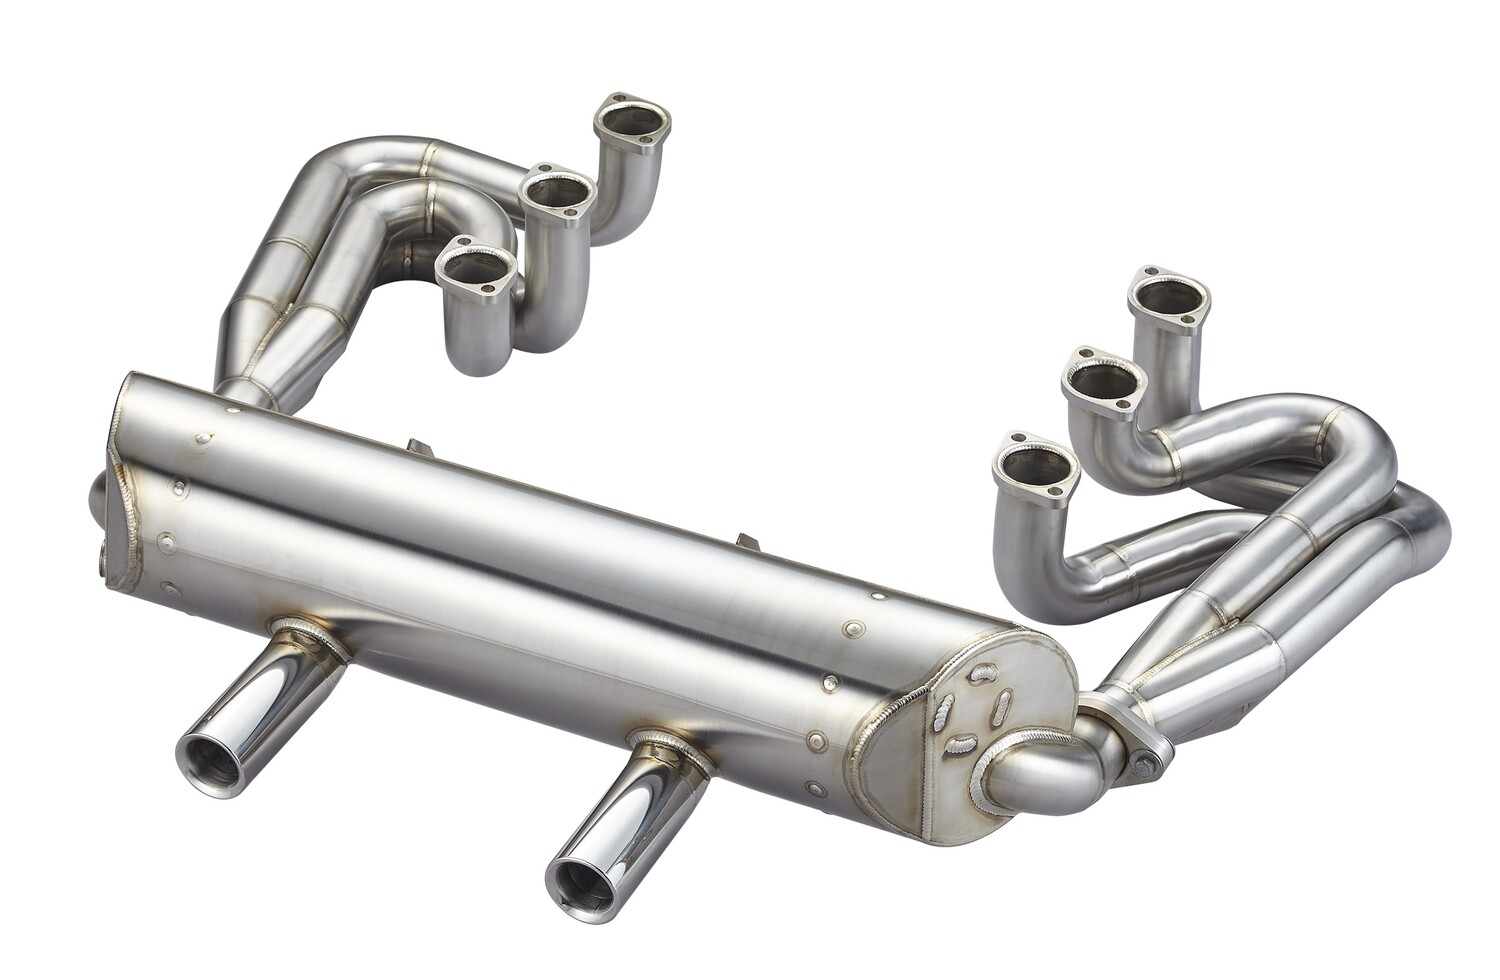 MERGE COMP 600 EXHAUST SYSTEM FOR EARLY 911